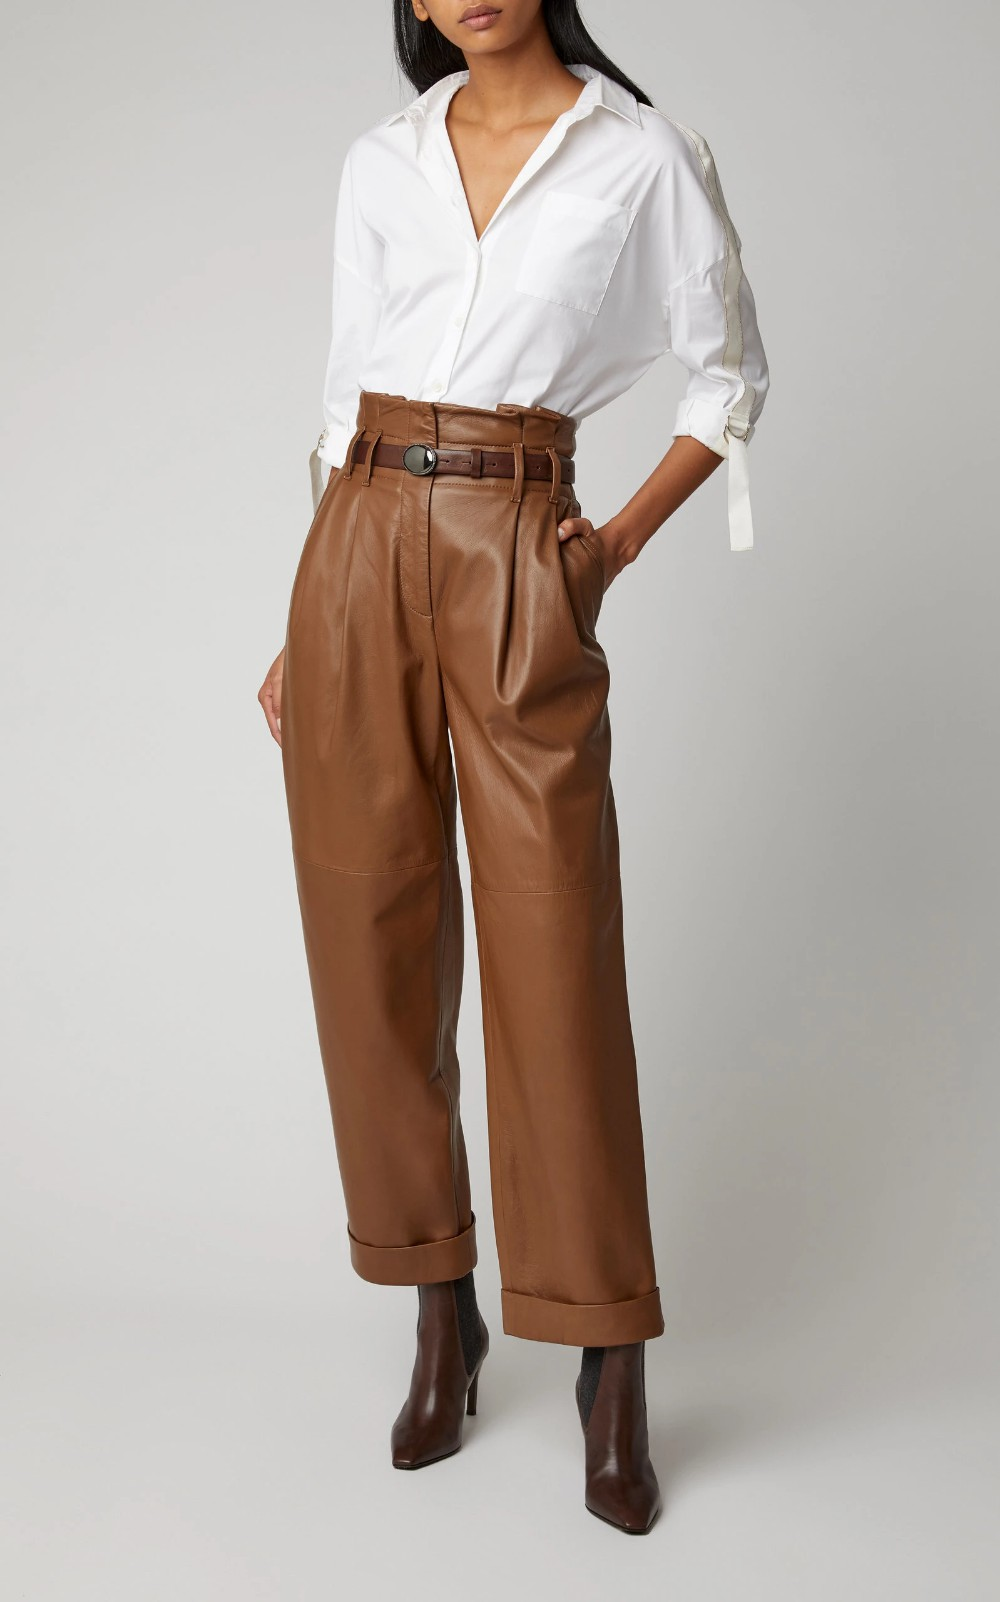 Brown leather pants outfit highwaist